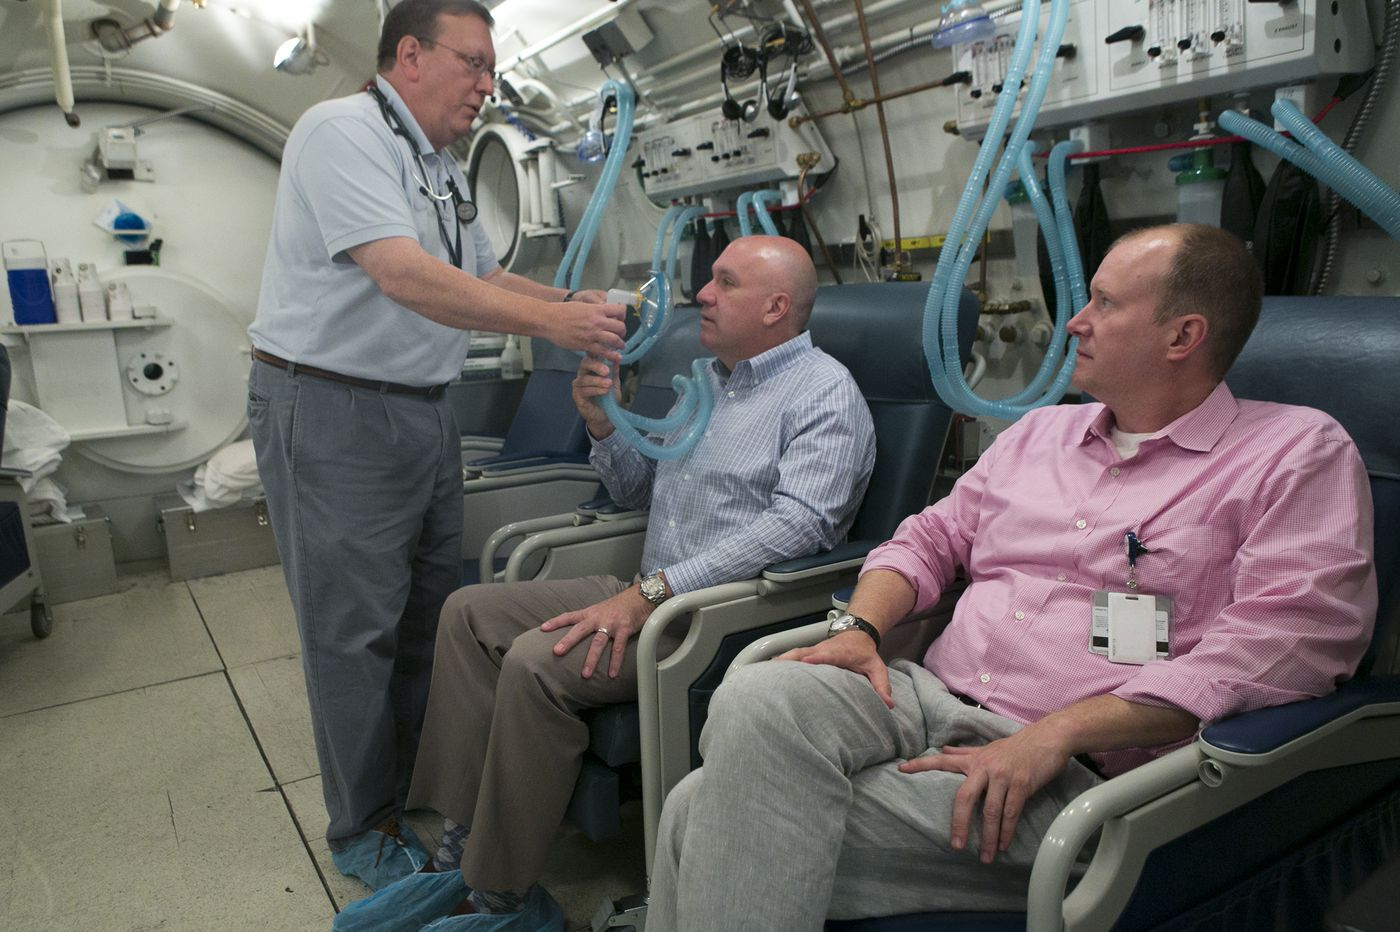 Hyperbaric Oxygen The Mysterious Therapy That Saved A